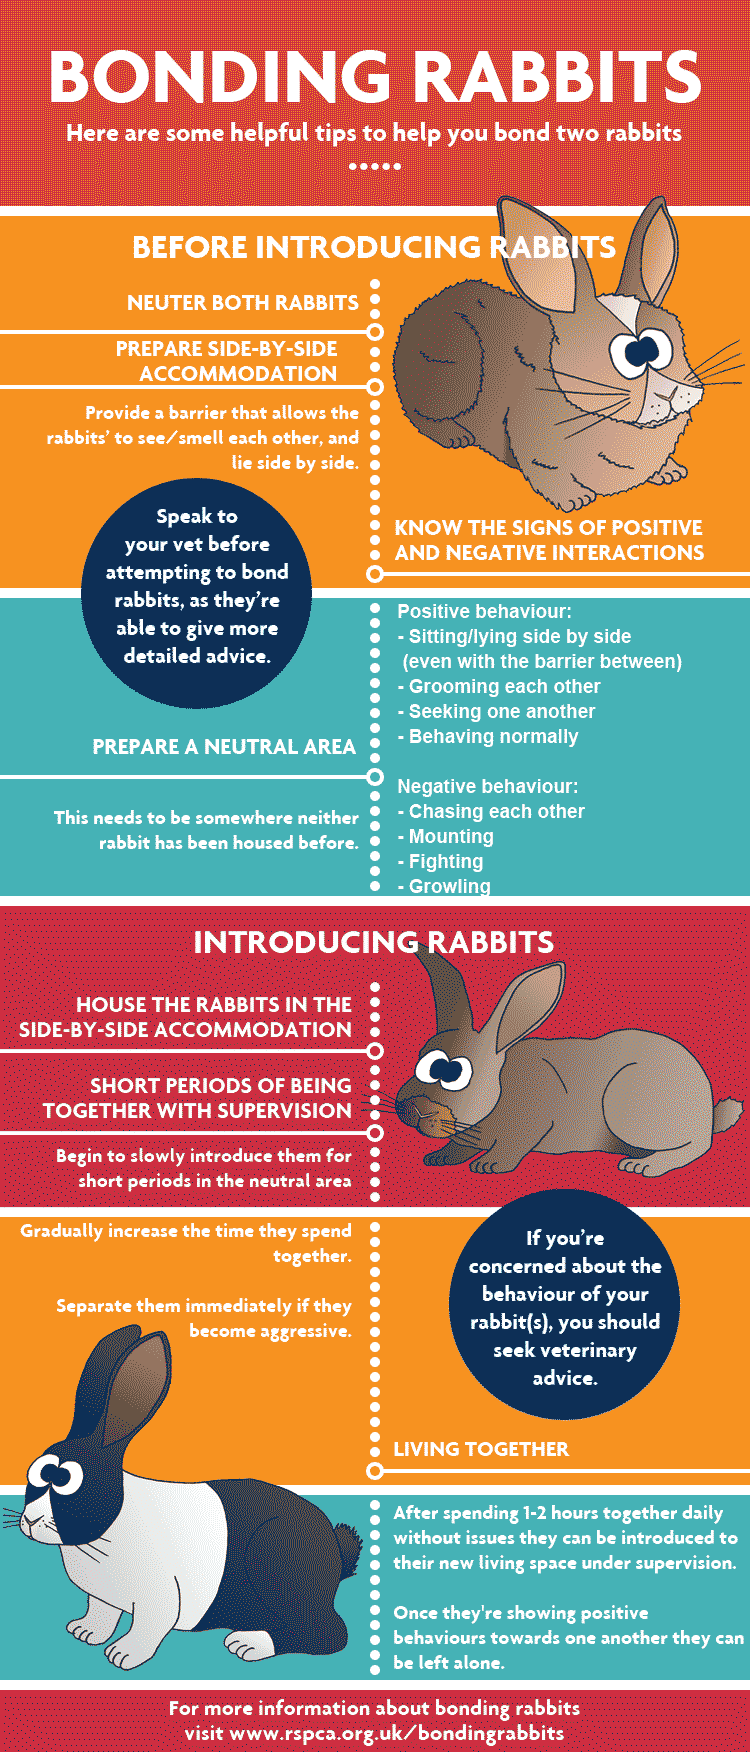 How to bond rabbits so they can live together - Bonding rabbits, Bunny cages, Pet bunny, Pet rabbit, Rabbit behavior, Rabbit care - Rabbit bonding tips and how to get them to live together  Find out what are the good signs your rabbits are getting along and making sure they don't fight